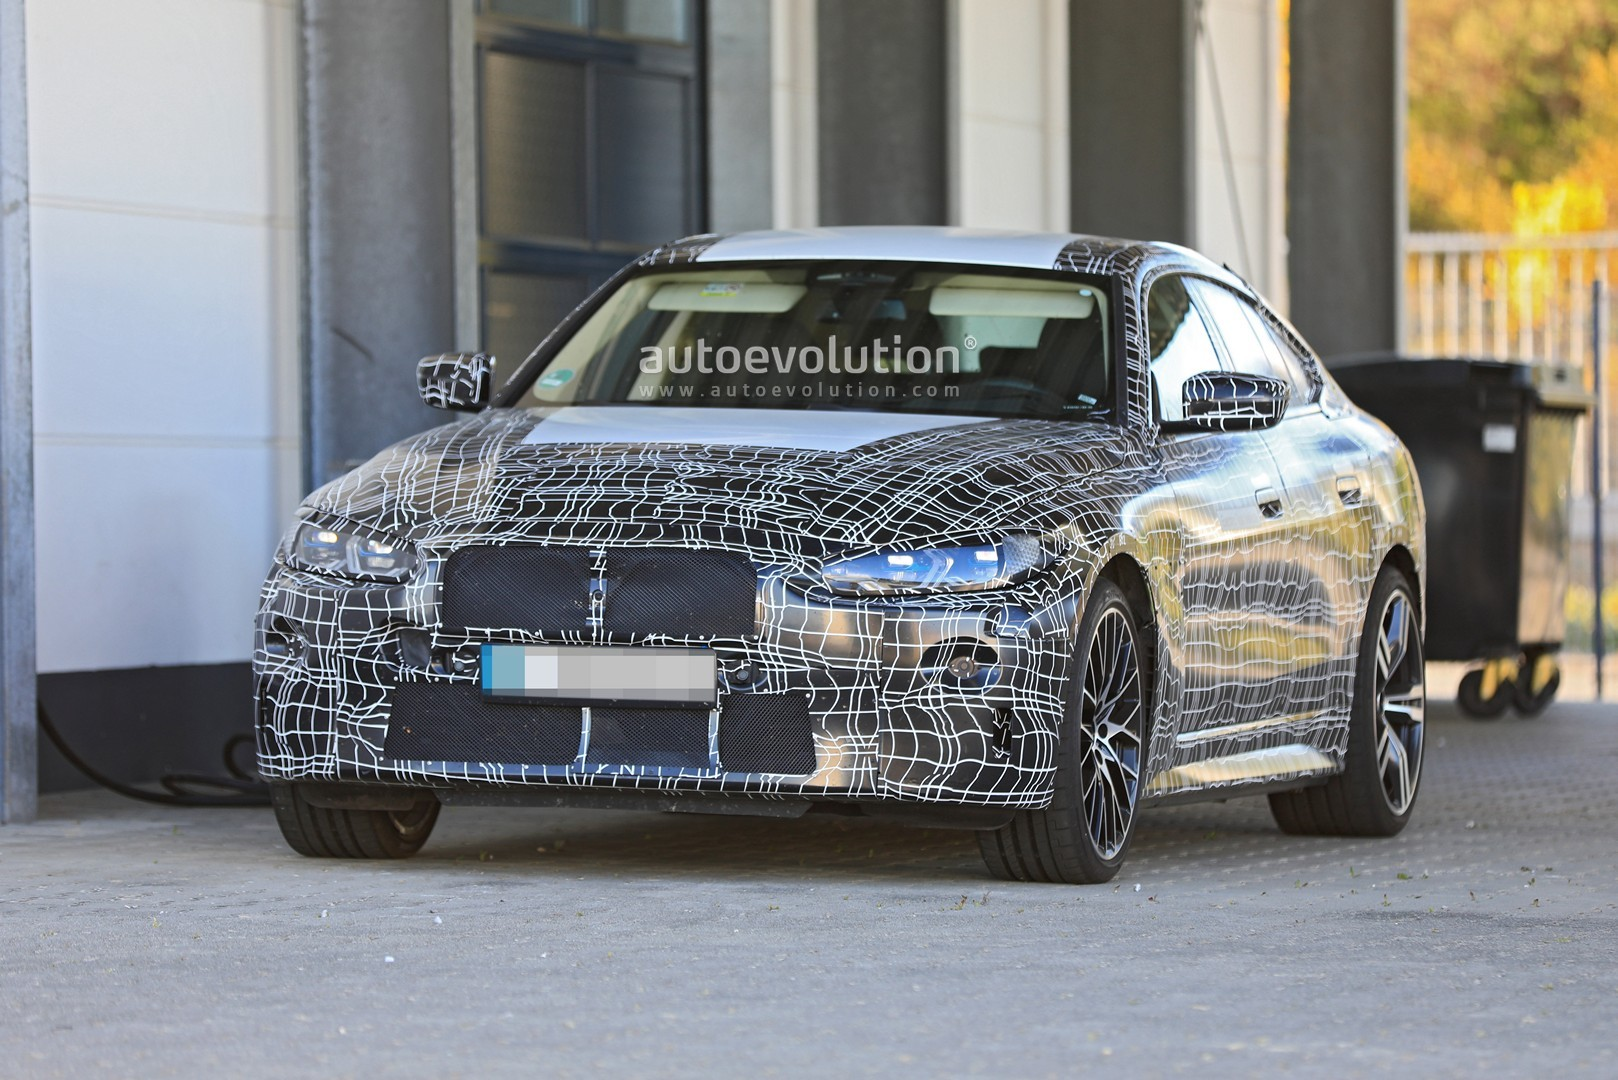 bmw-i4-spied-with-4-series-styling-might-have-dual-motor-setup_4